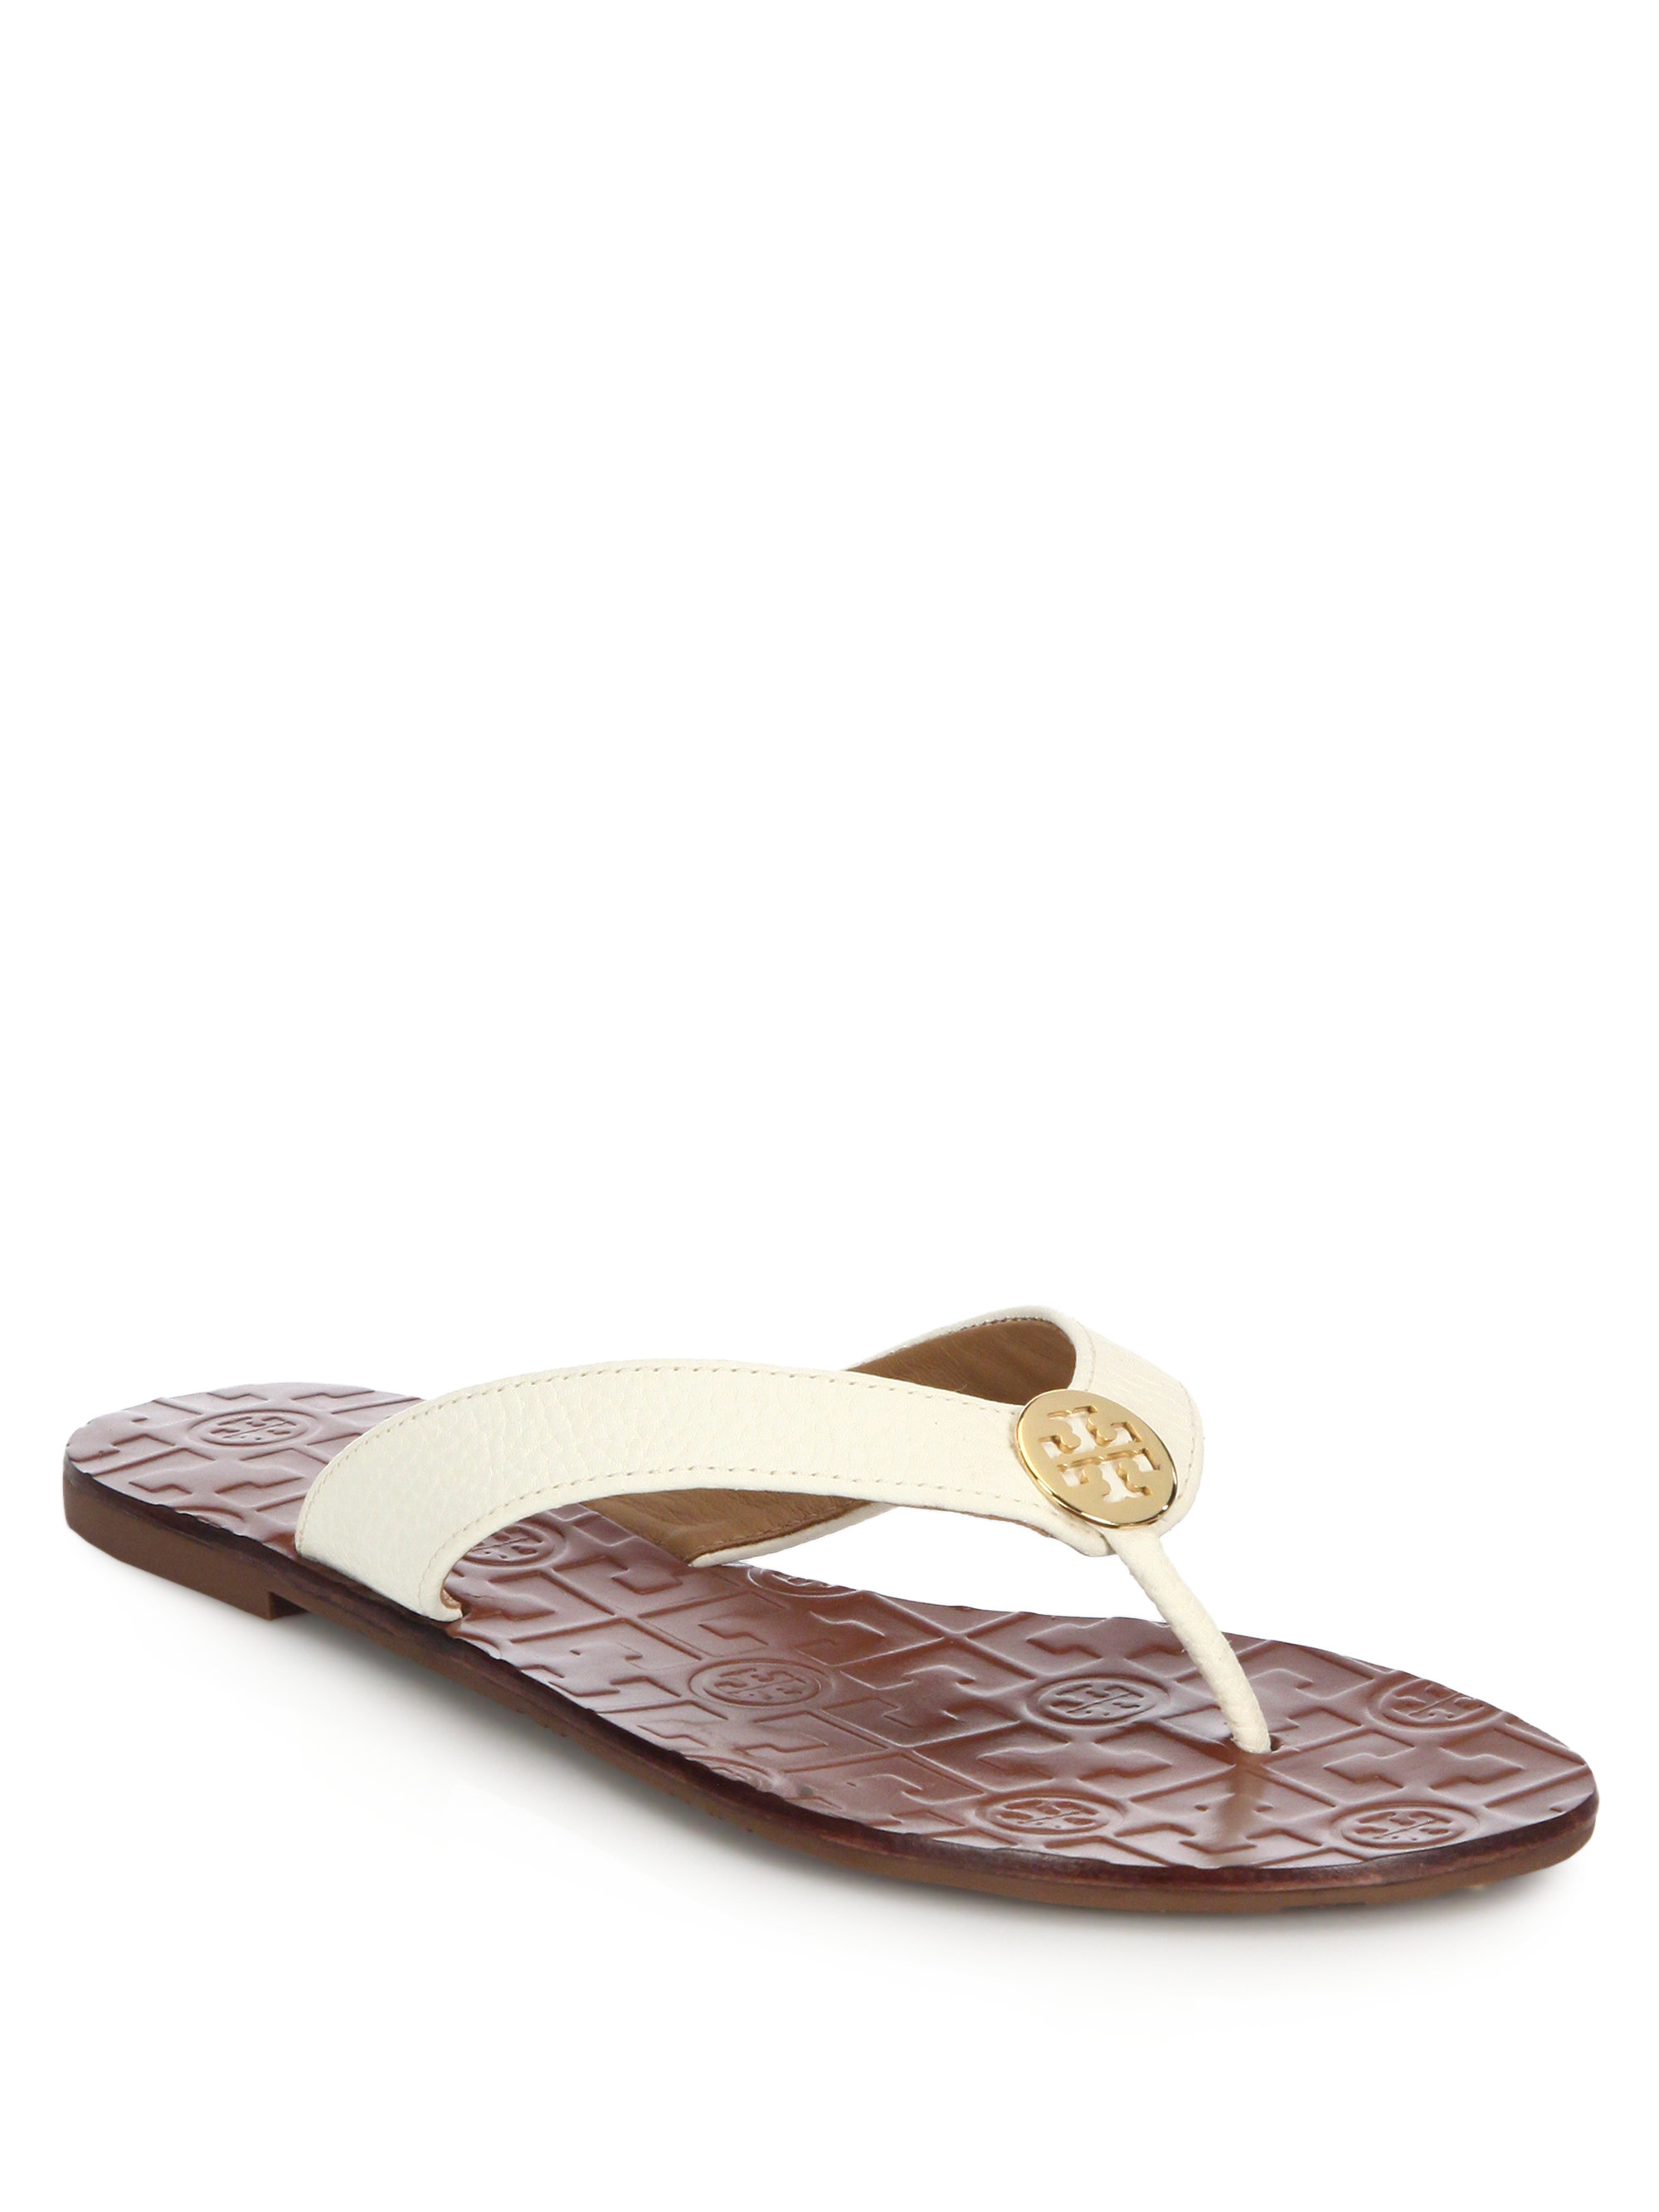 877dd76b4 Lyst - Tory Burch Thora Tumbled Leather Thong Sandals in Brown